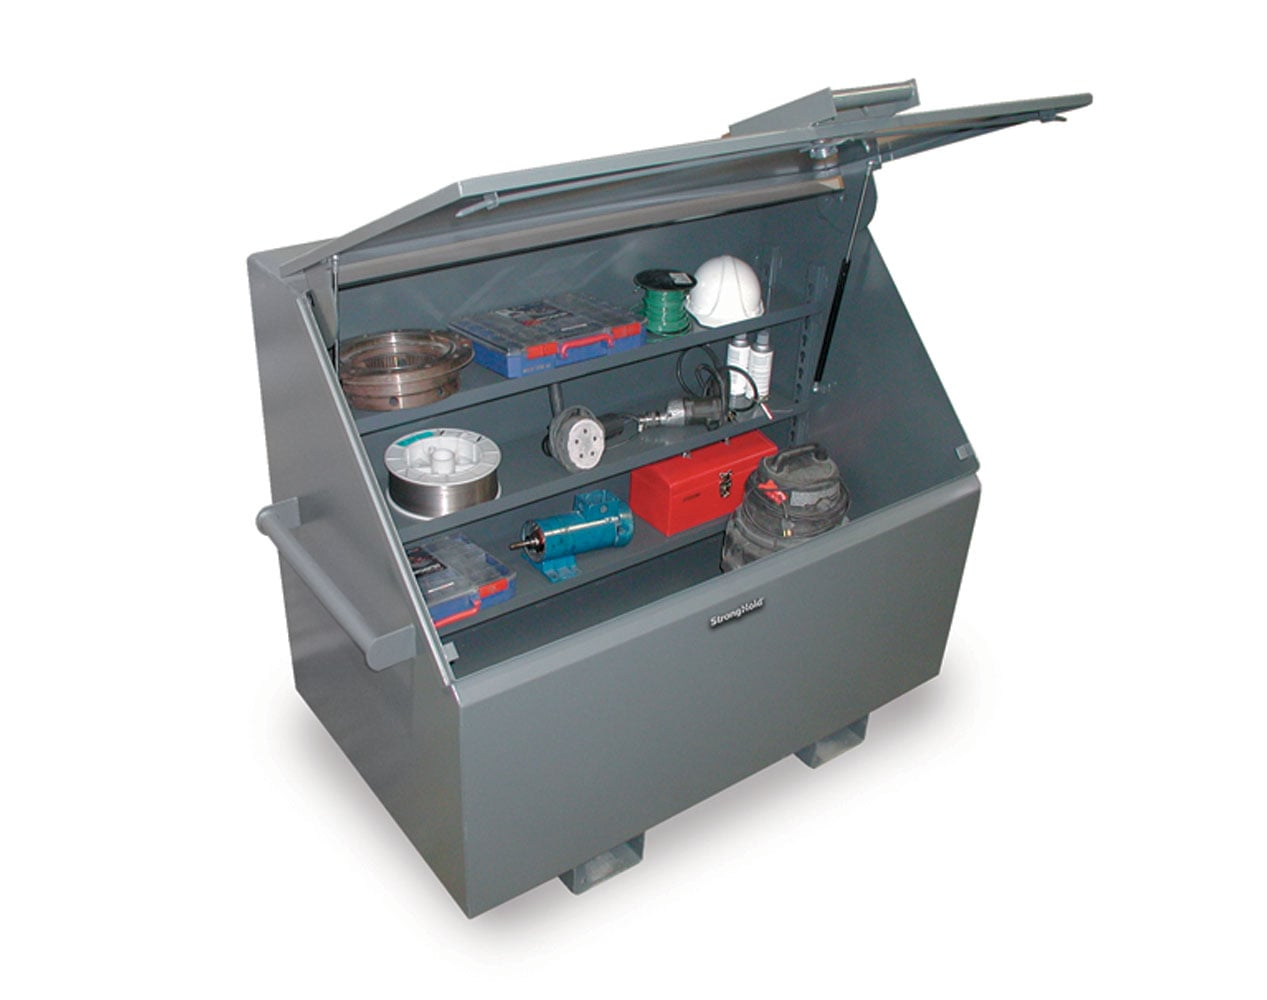 Extra Heavy Duty 12 GA Job Site Box with Lift-Up Lid, 3 Shelves – 60 In. W x 36 In. D x 48 In. H